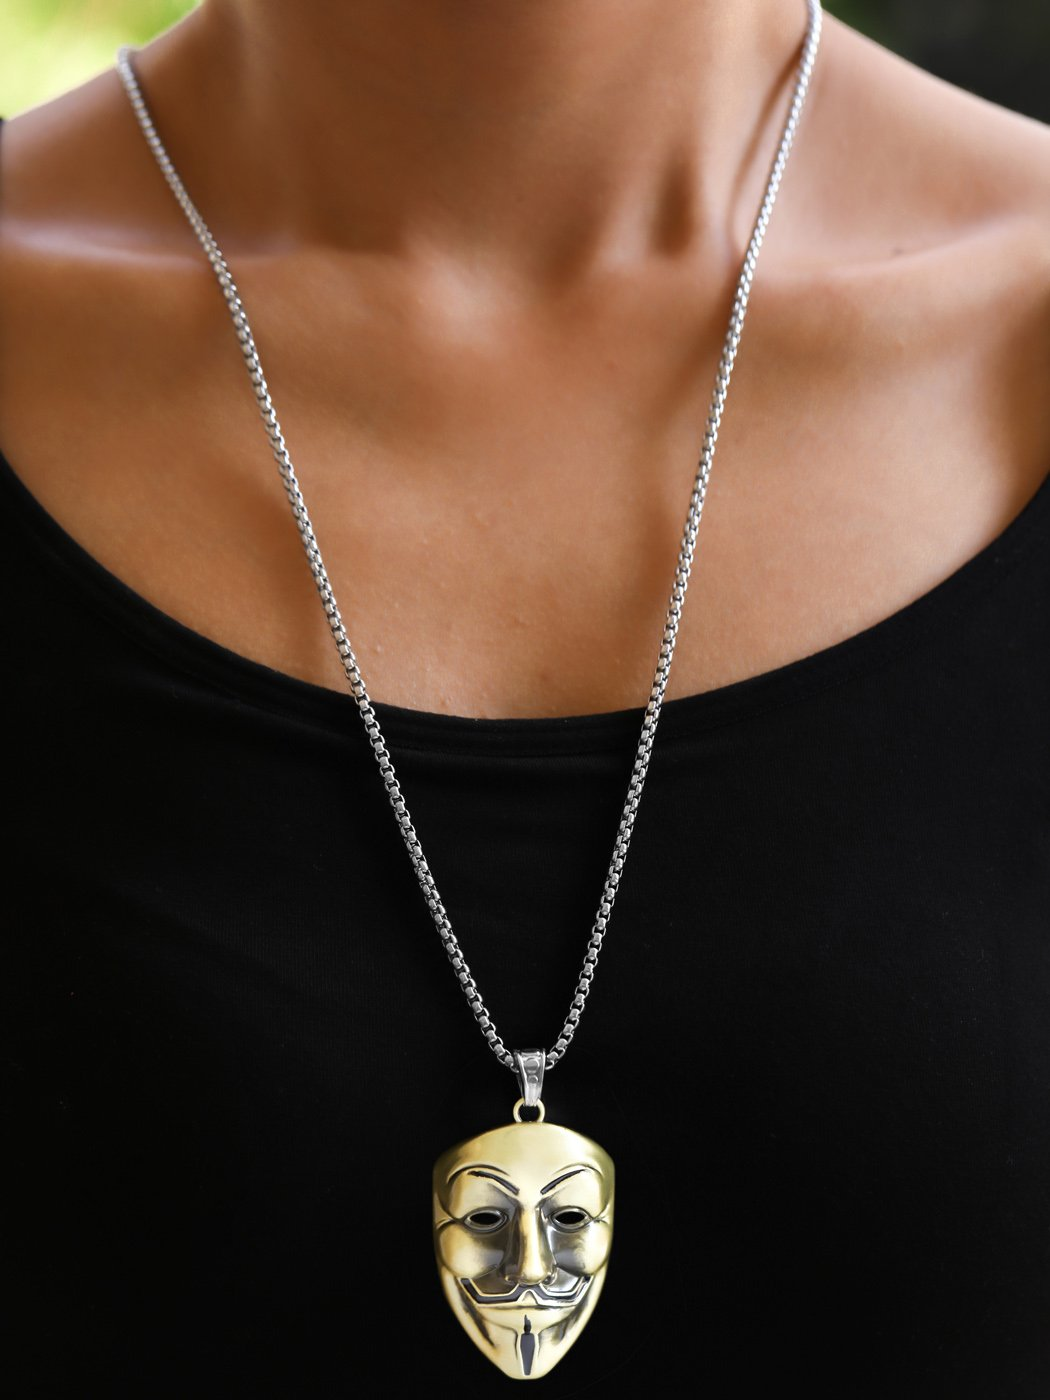 Artio Mask Pendant Necklace Jewelry for Men and Women (Bronze)